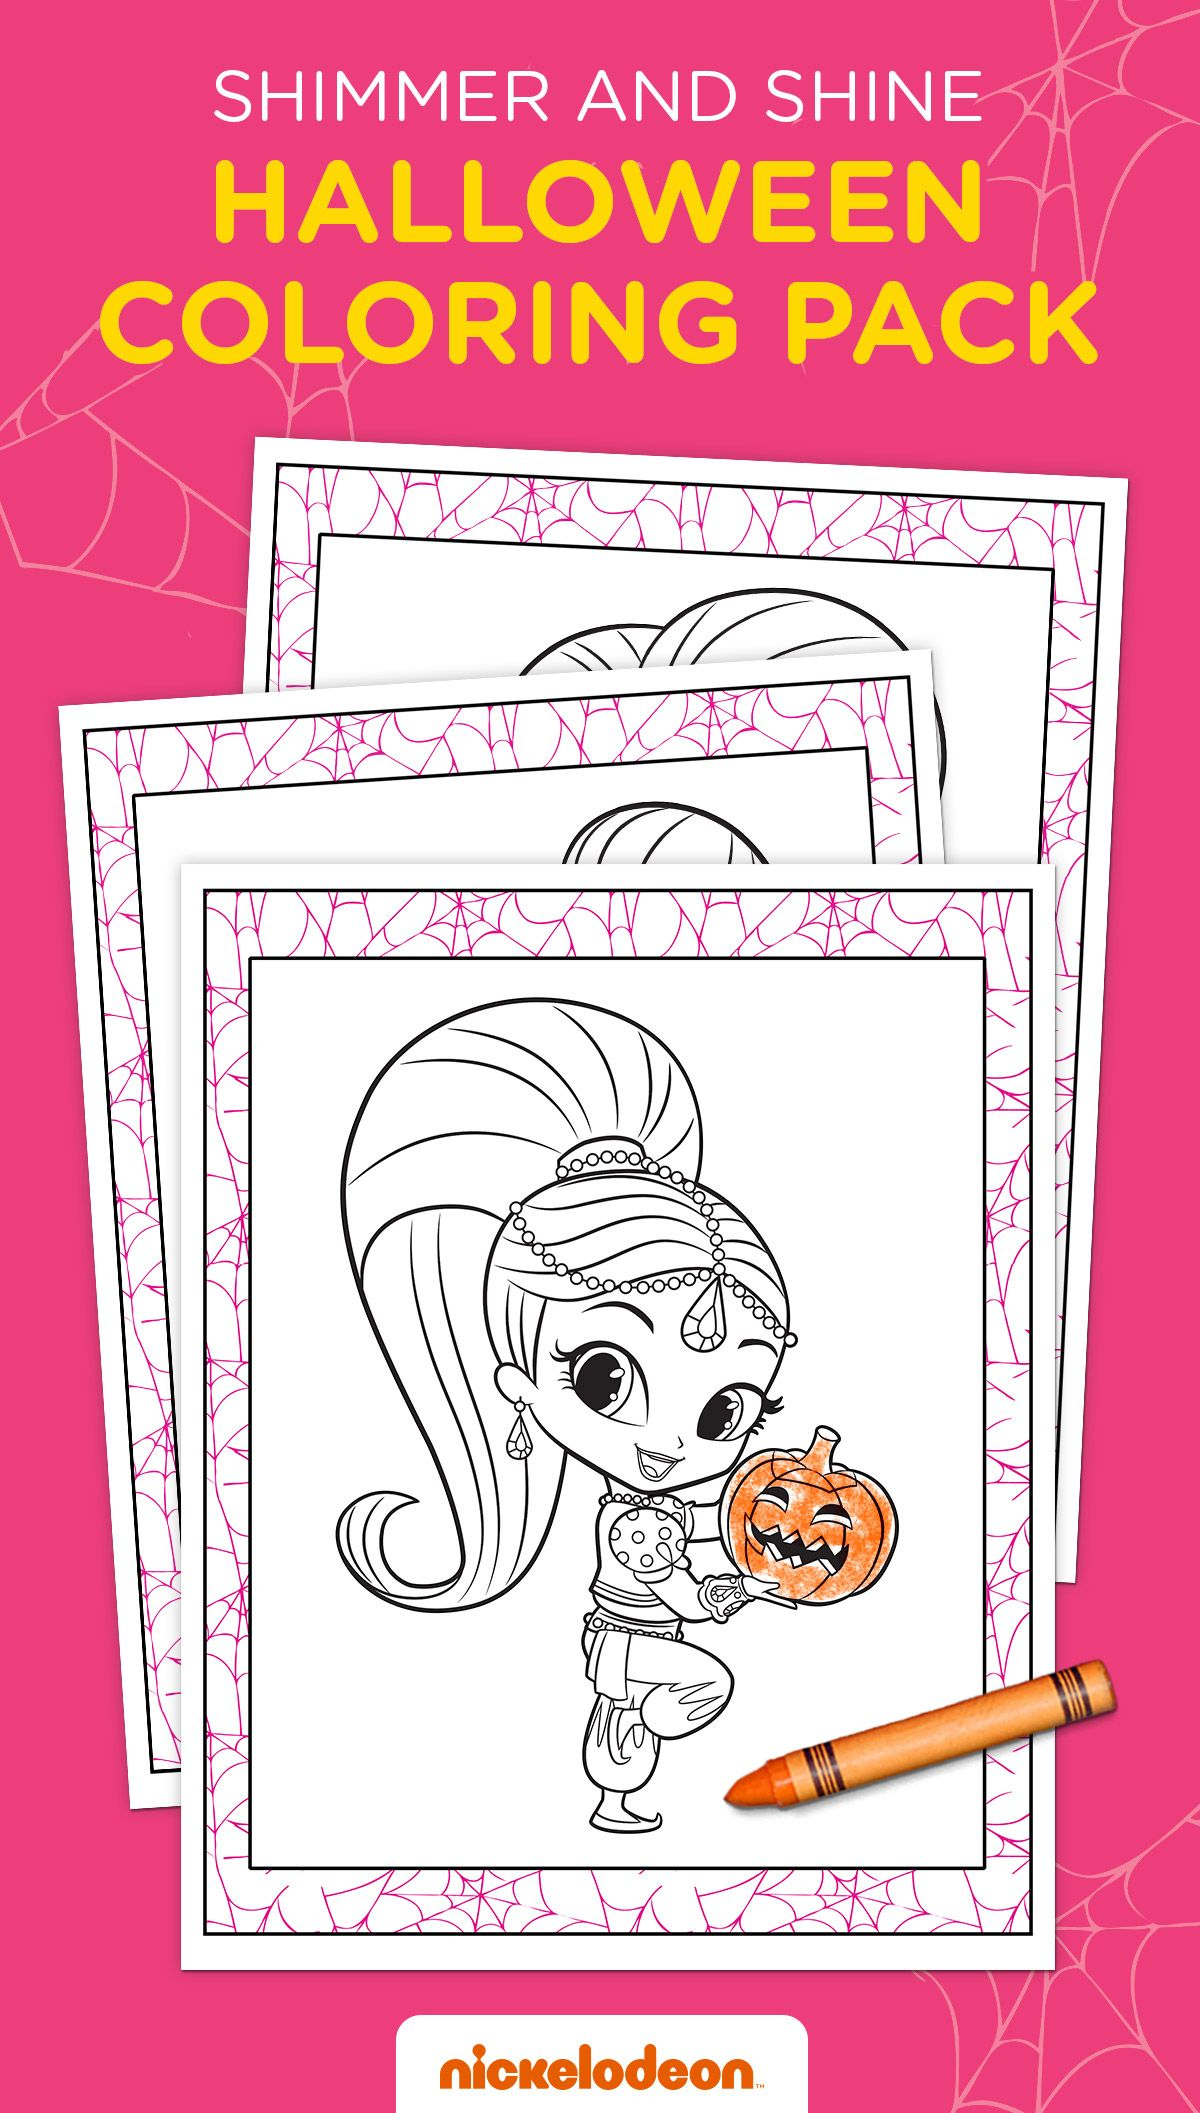 Printable coloring pages shimmer and shine - Shimmer And Shine Halloween Coloring Pack